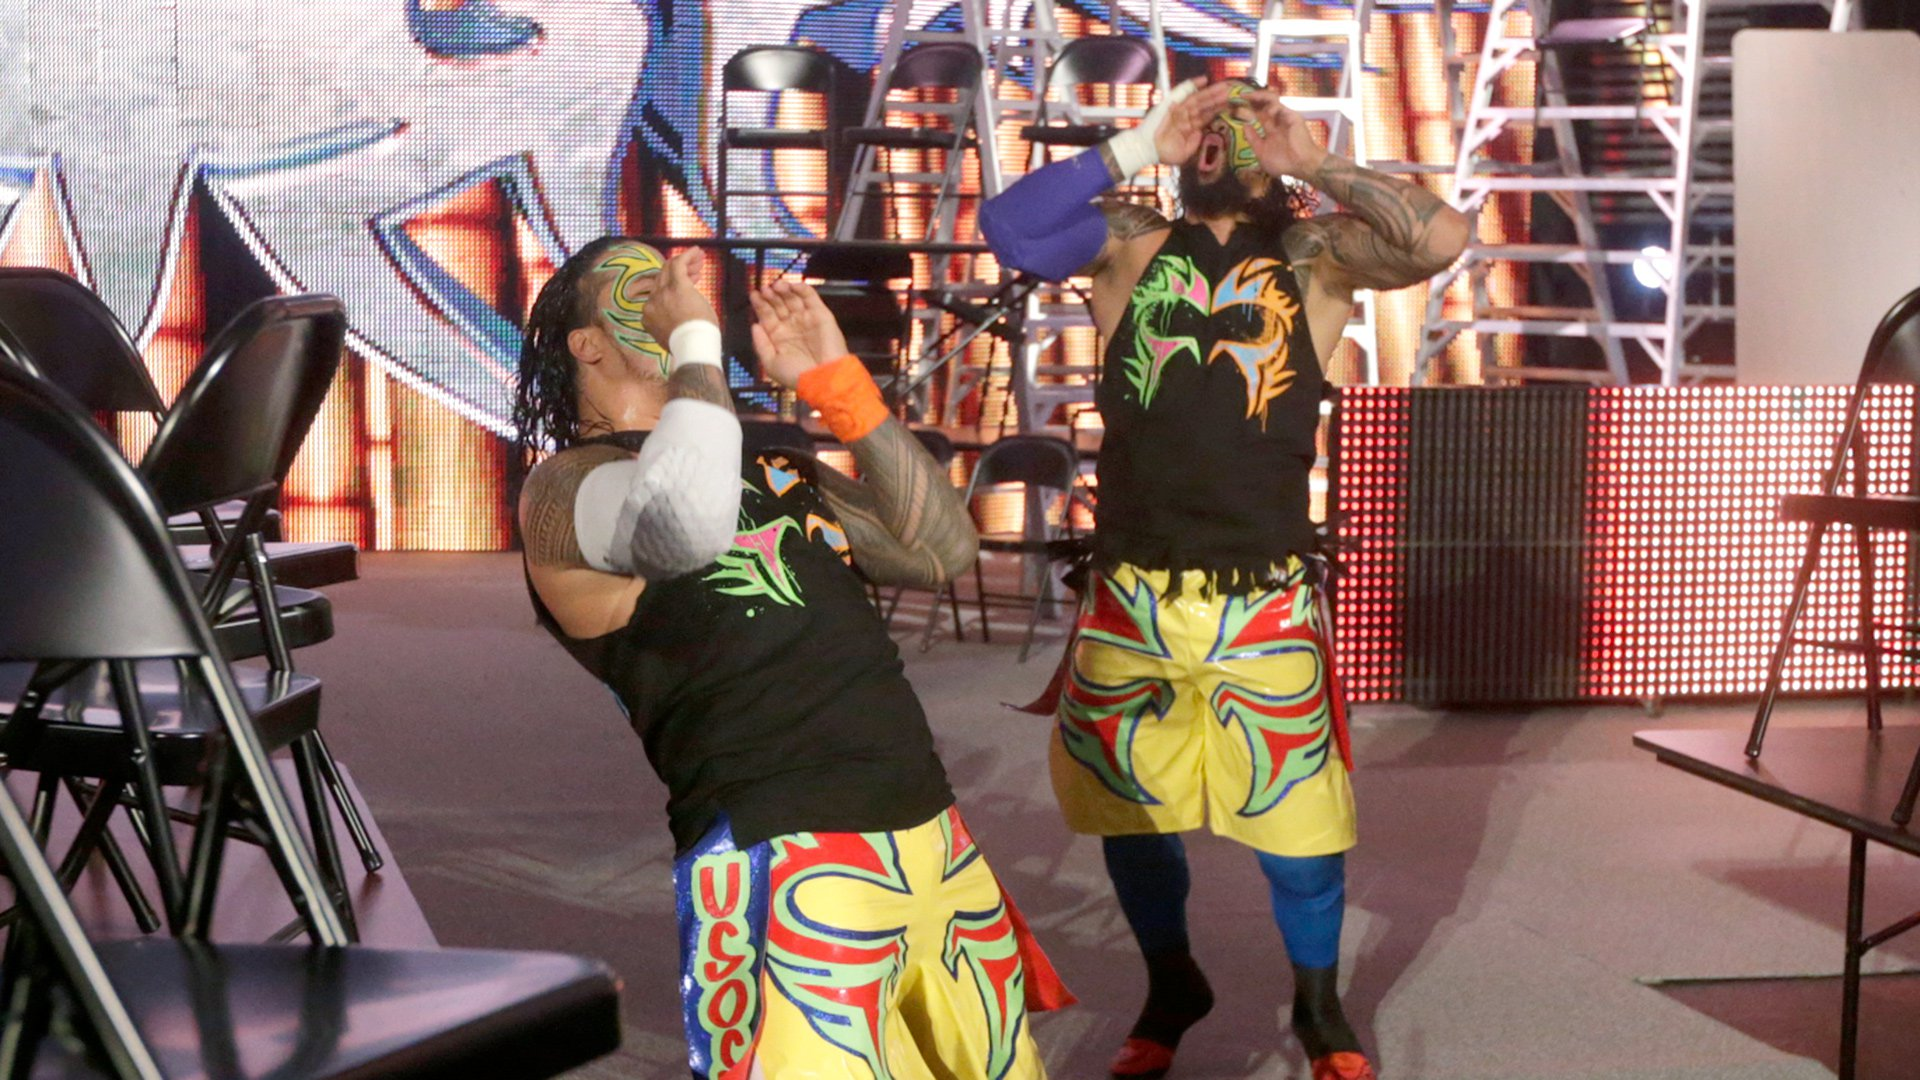 The Usos ignite the crowd as they vie to become three-time WWE Tag Team Champions.